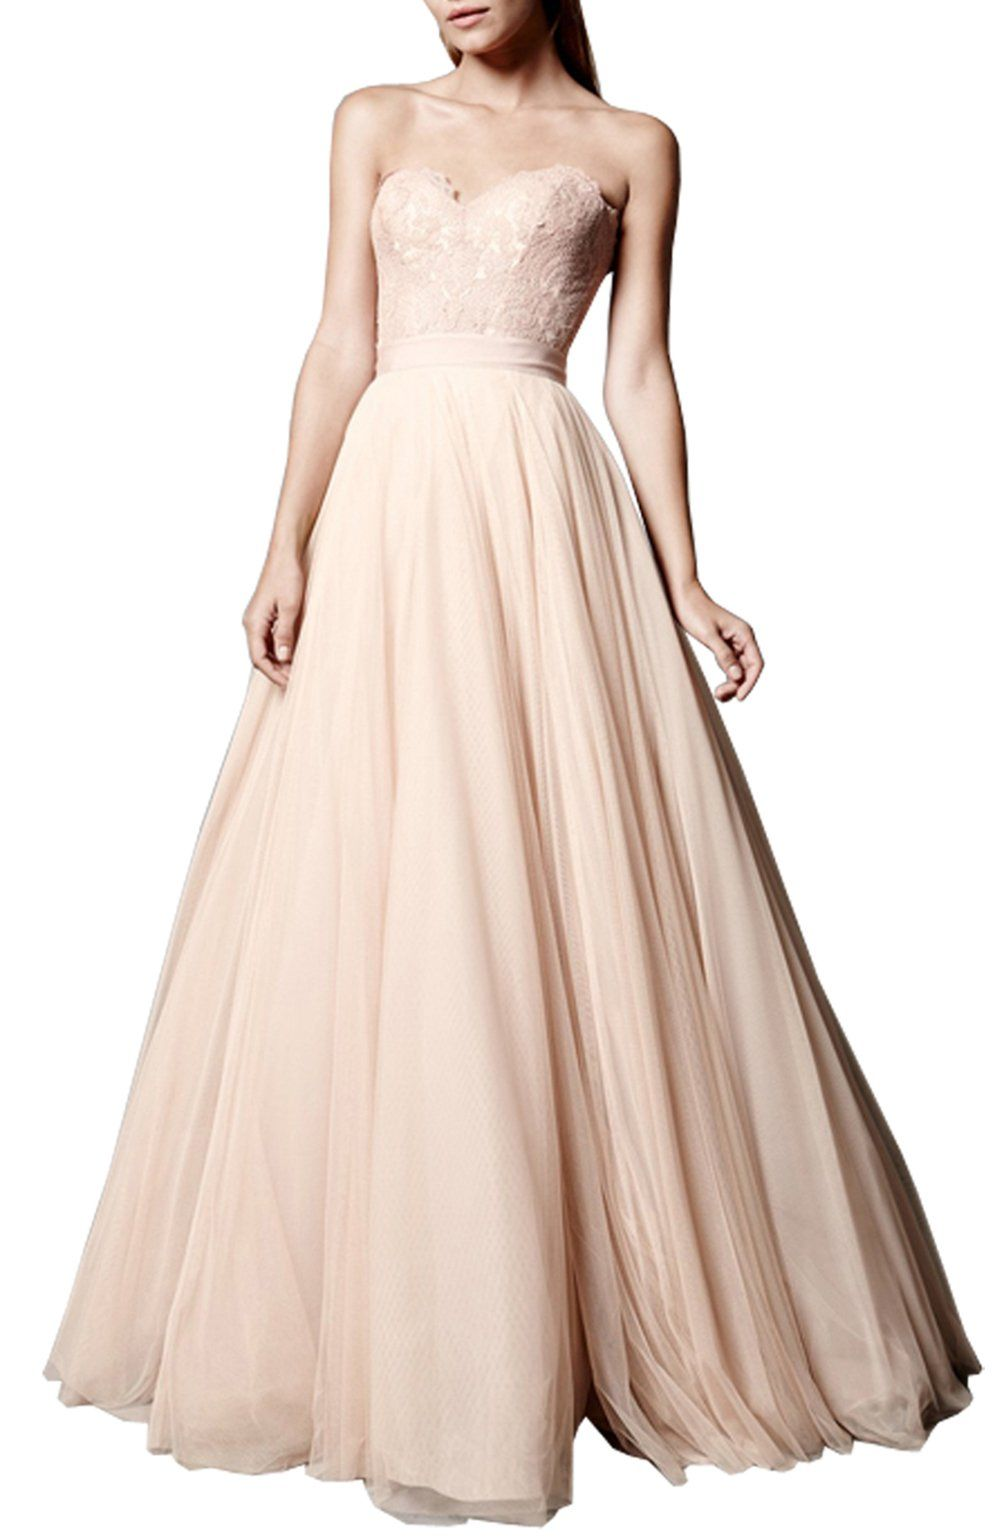 Ethel womenus sweetheart lace top backless formal party long prom